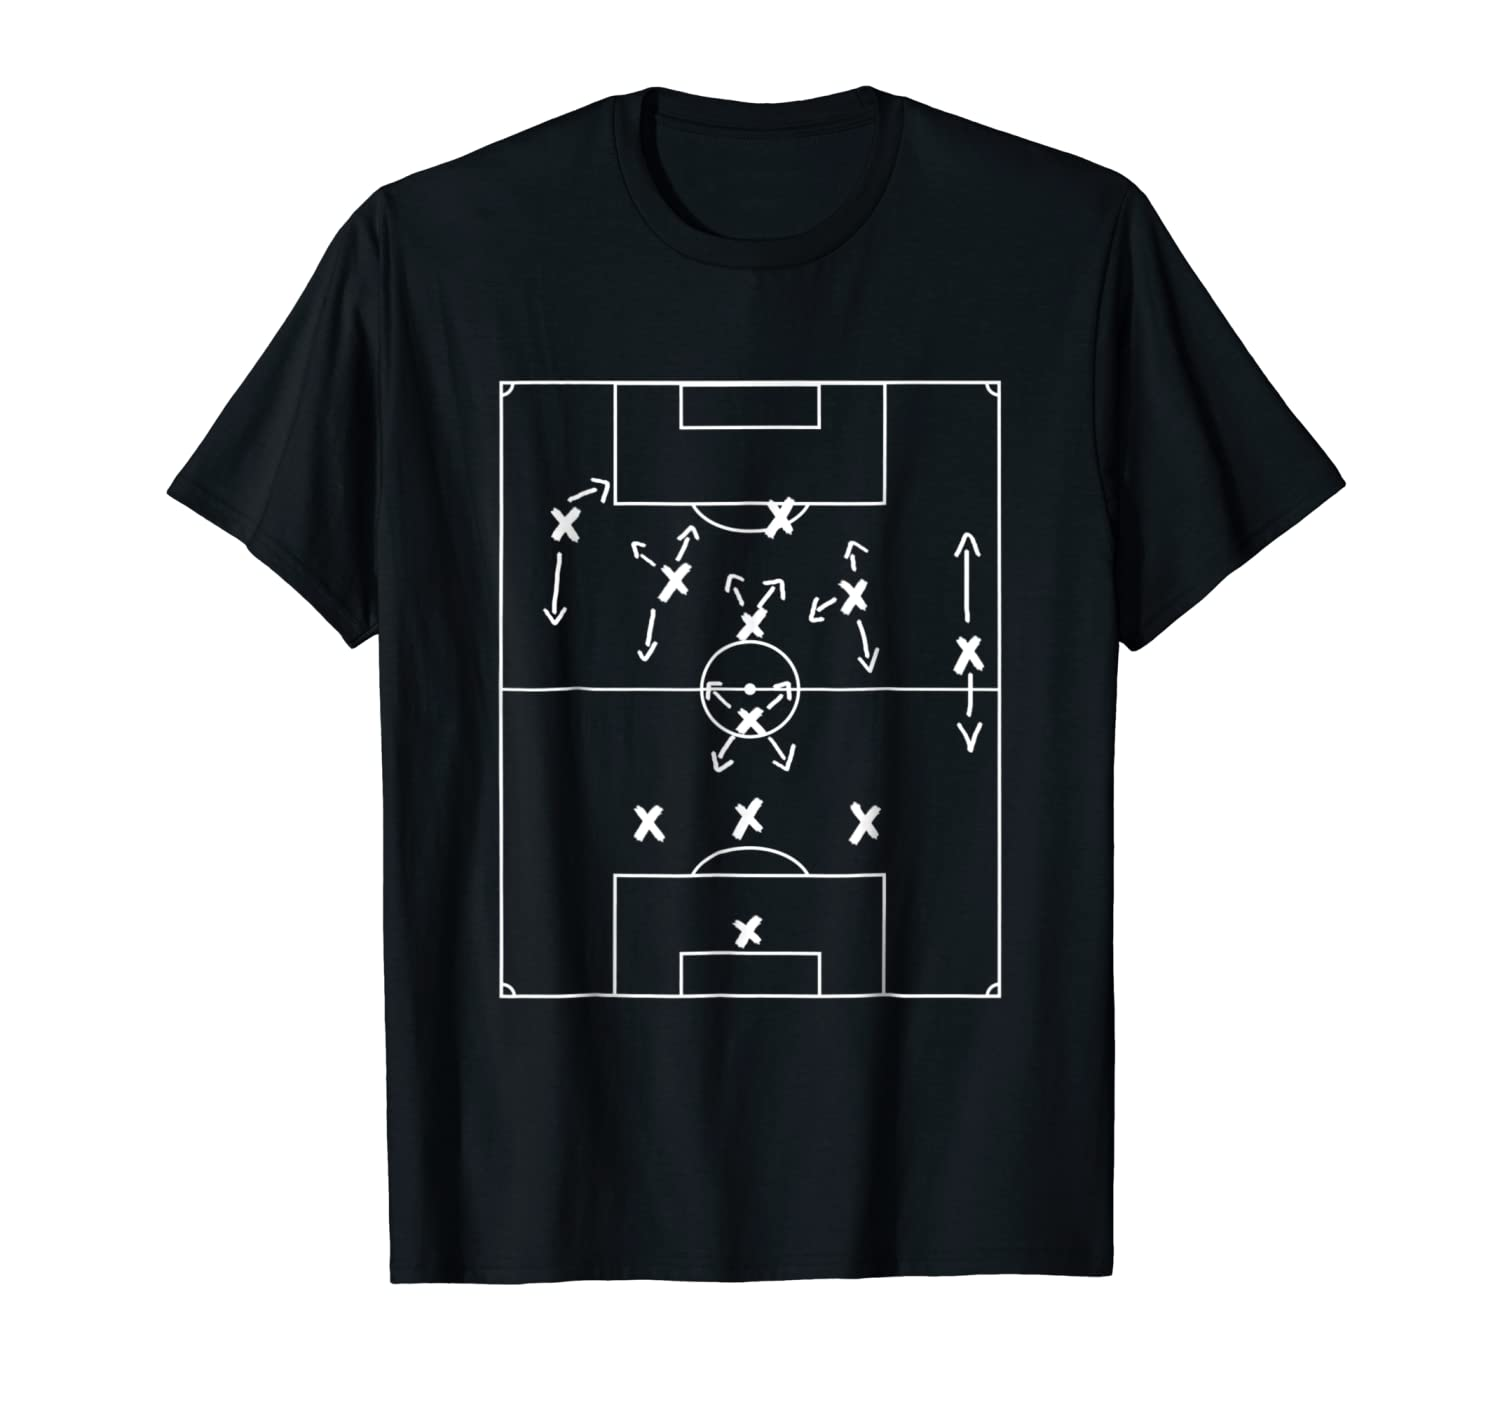 Football Soccer Tactic T Shirt Pep Formation